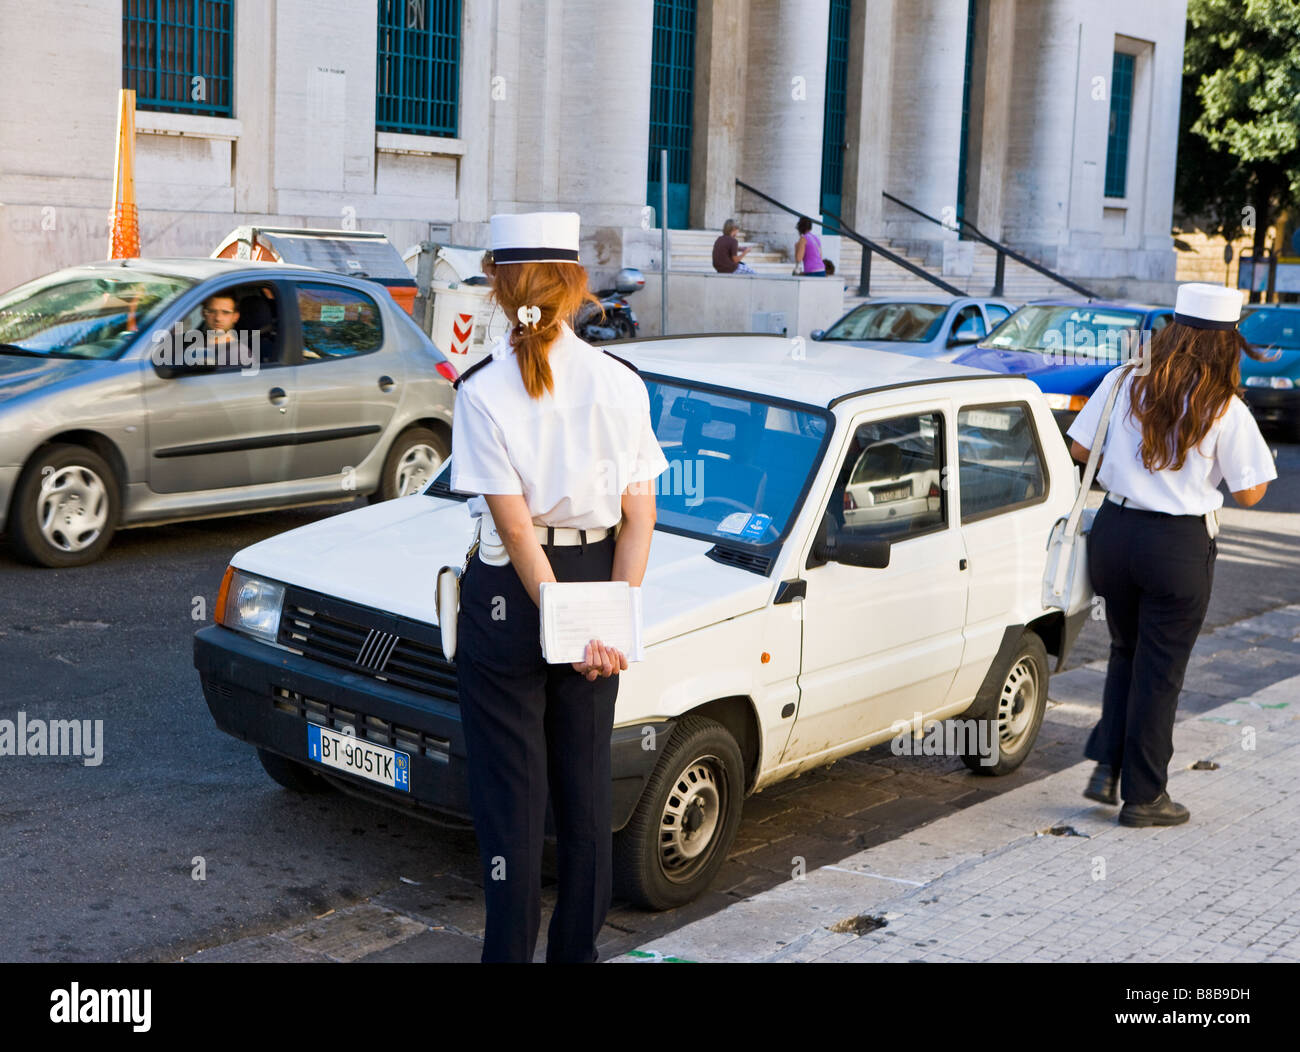 Two female Polizia enforcing parking regulations Lecce Puglia Italy - Stock Image